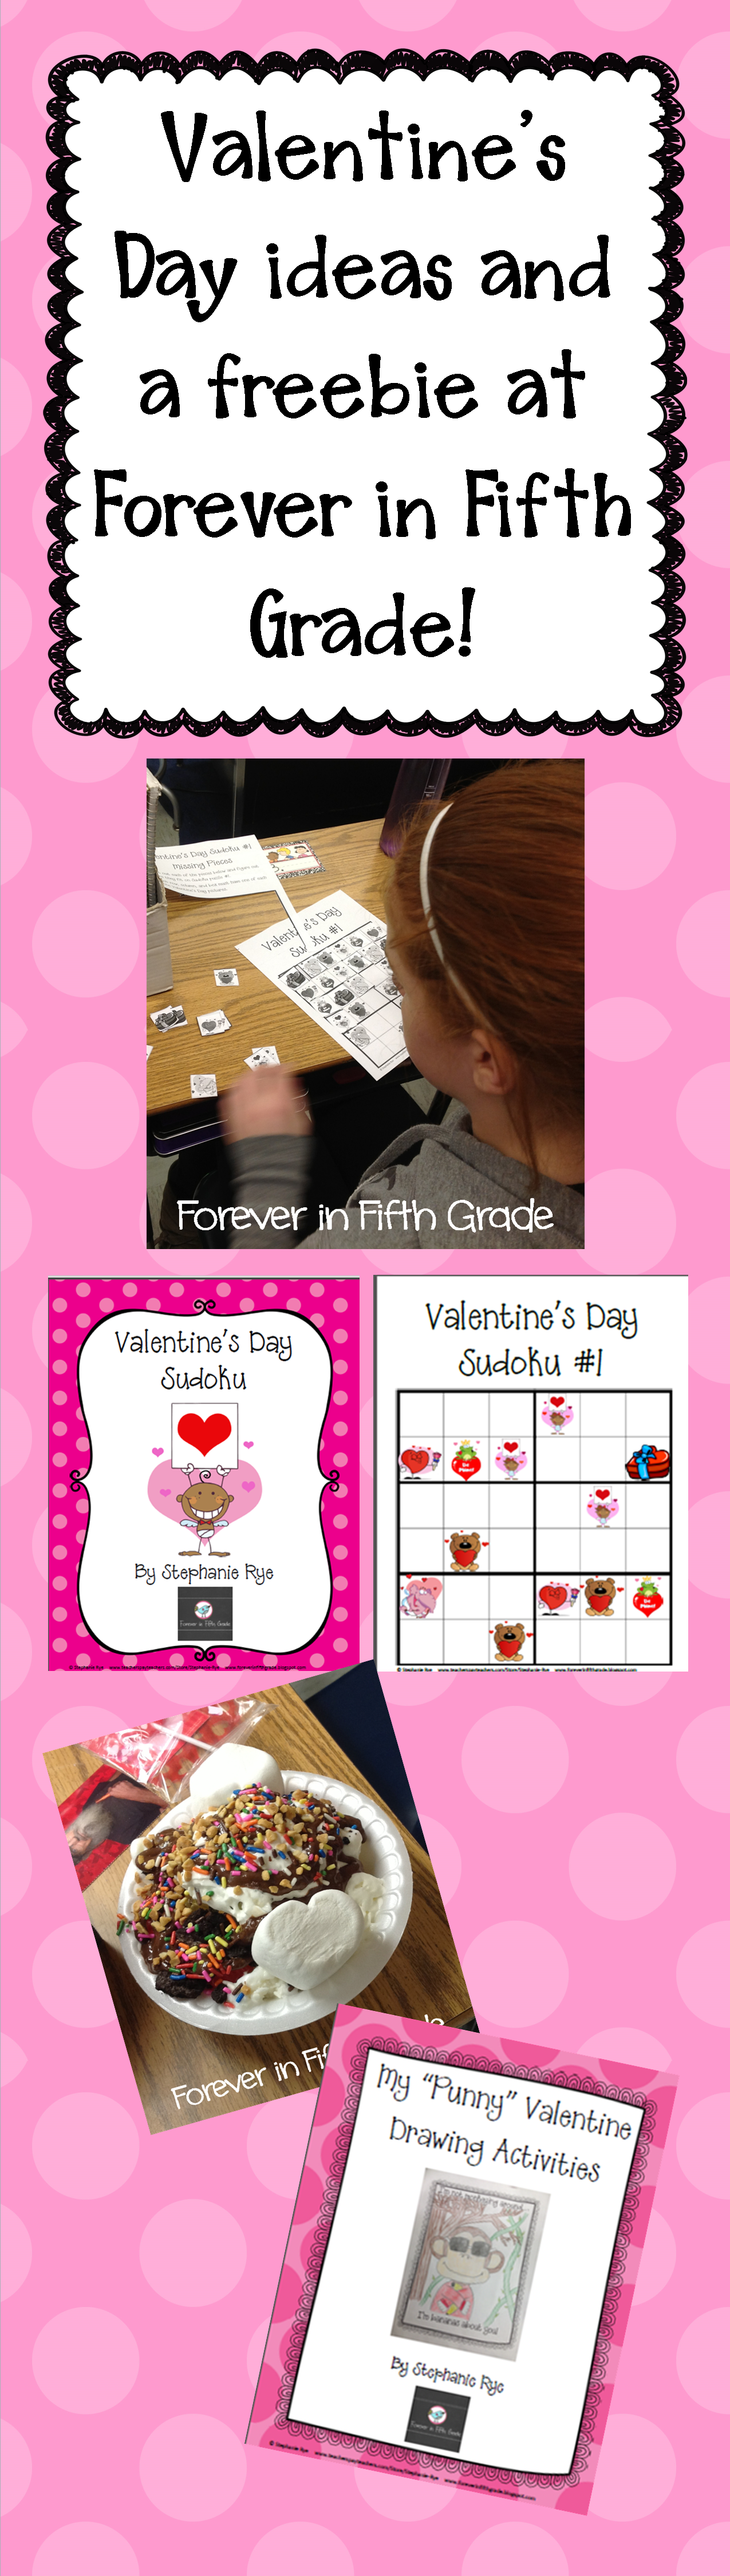 Find A Valentine S Day Freebie Activity Your Students Will Love At Forever In Fifth Grade